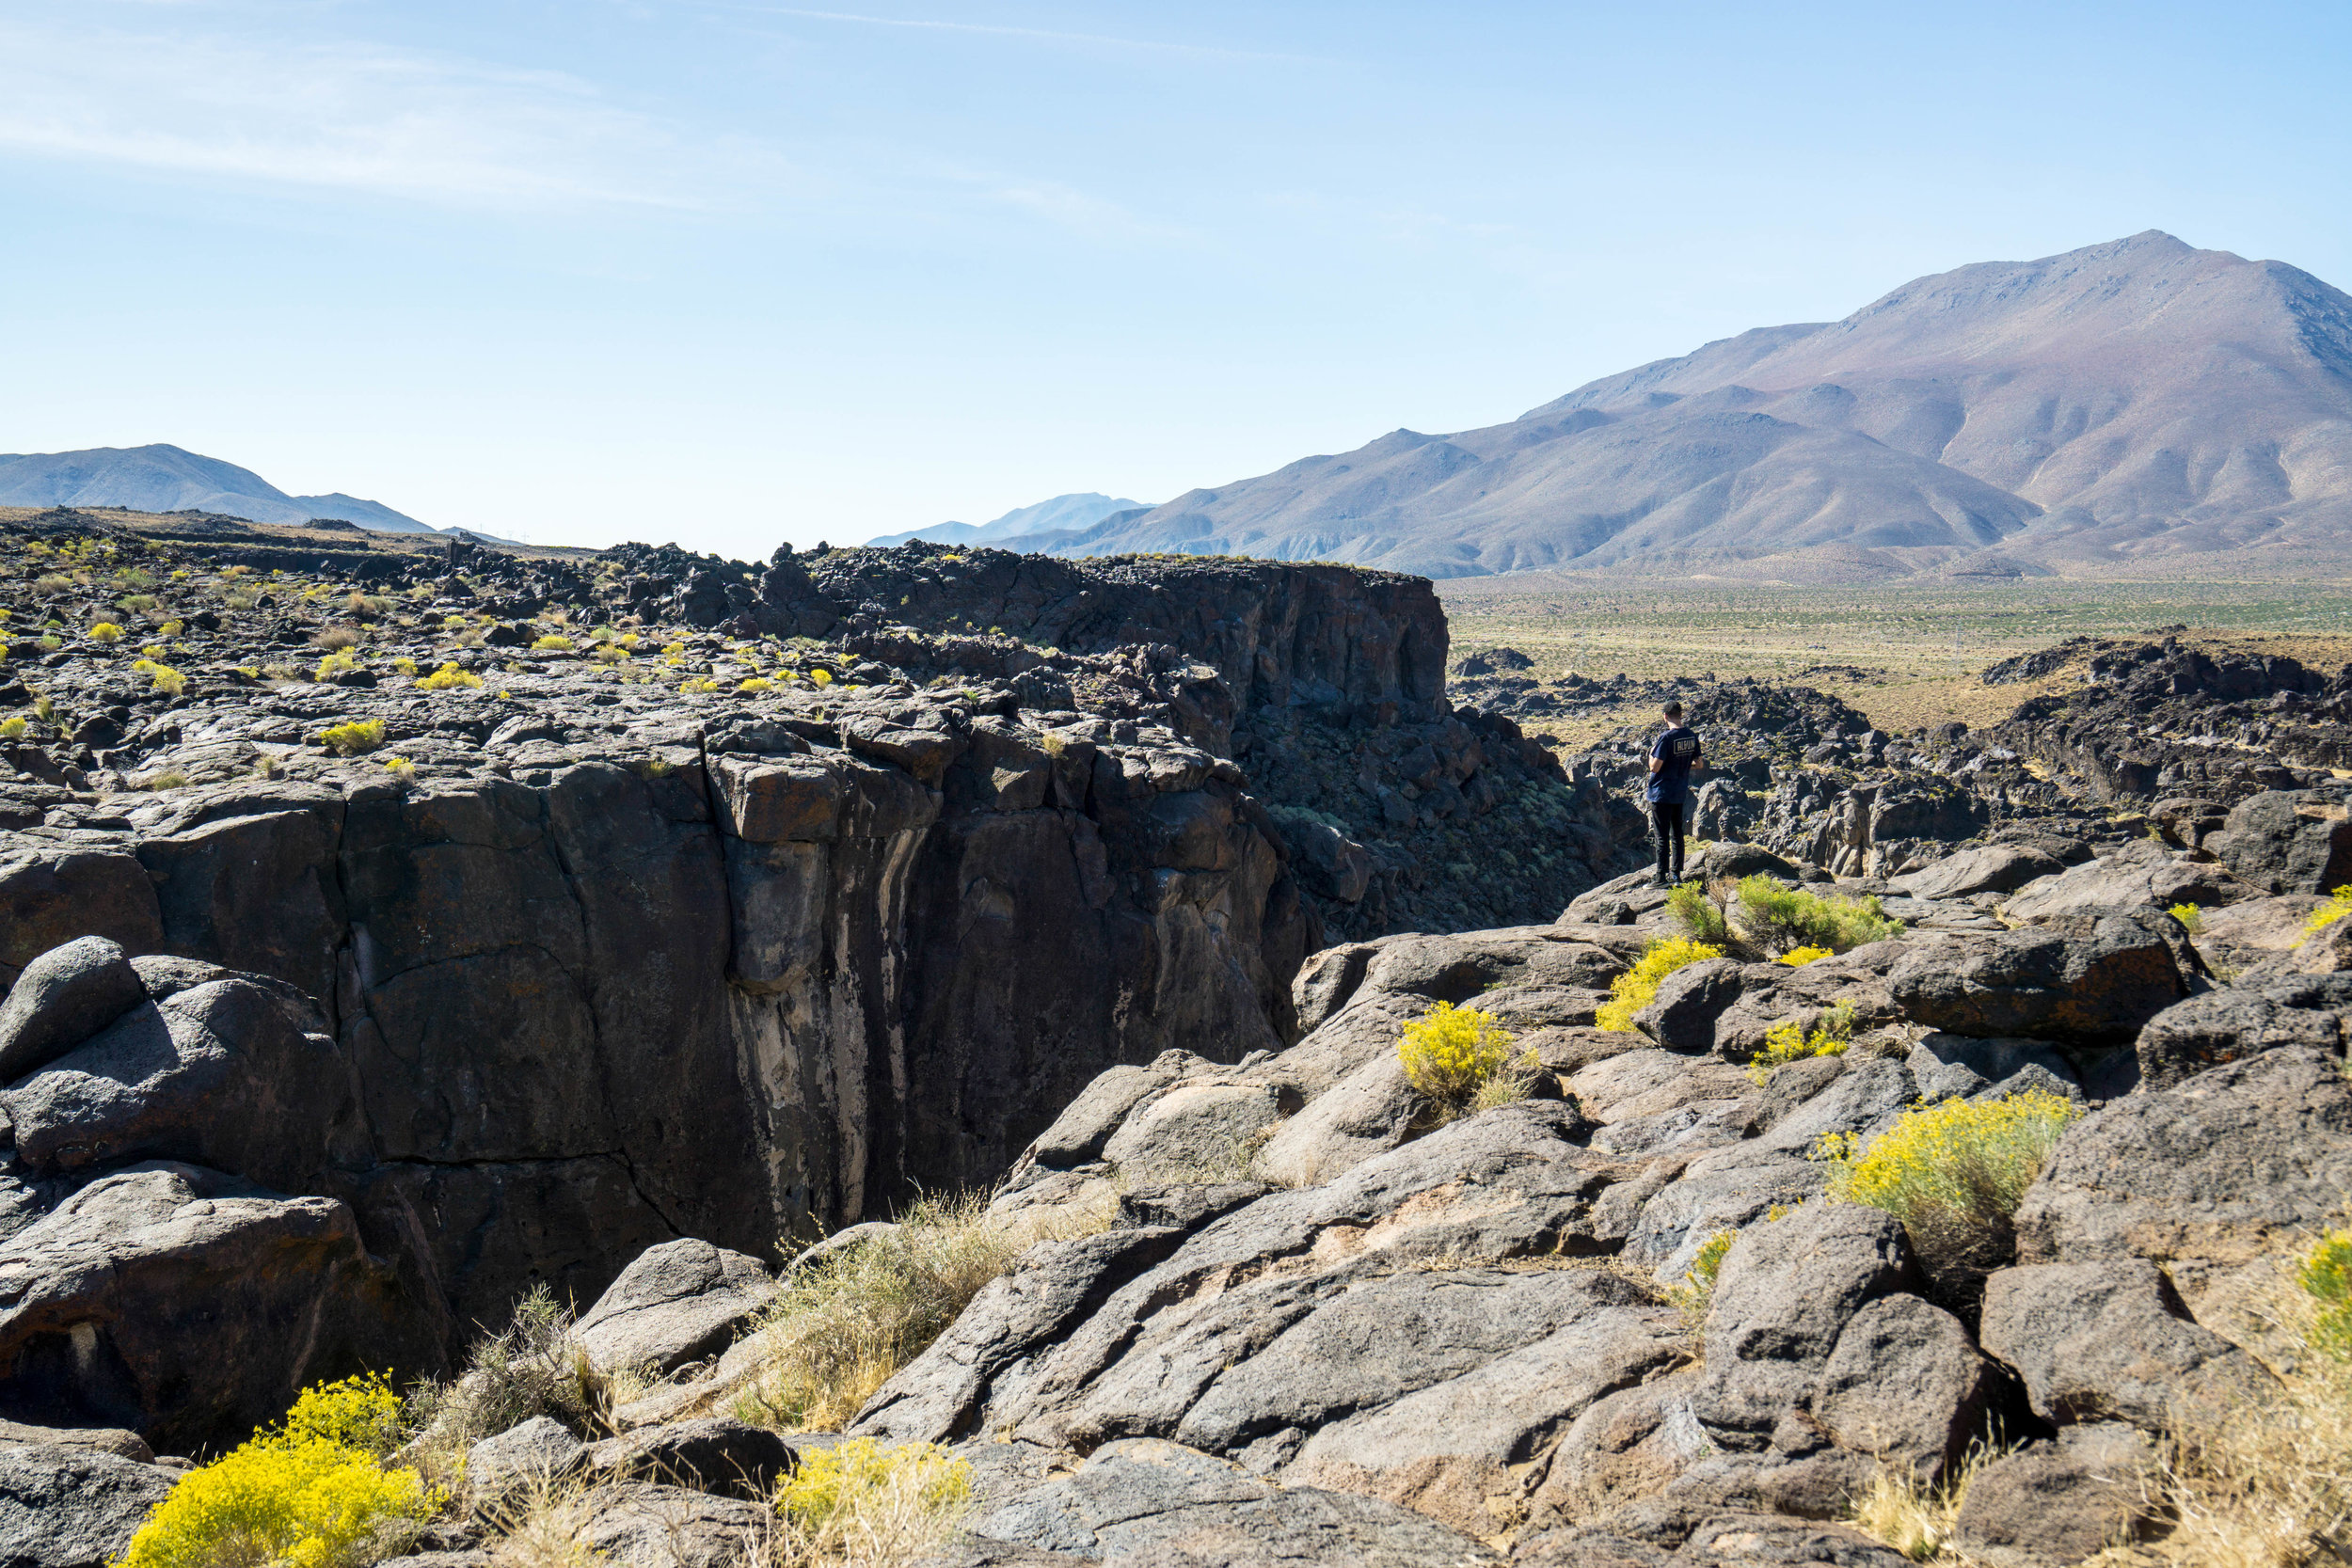 Nearby a water-carved lava canyon presents yet another reminder of the Sierra's volcanic past.